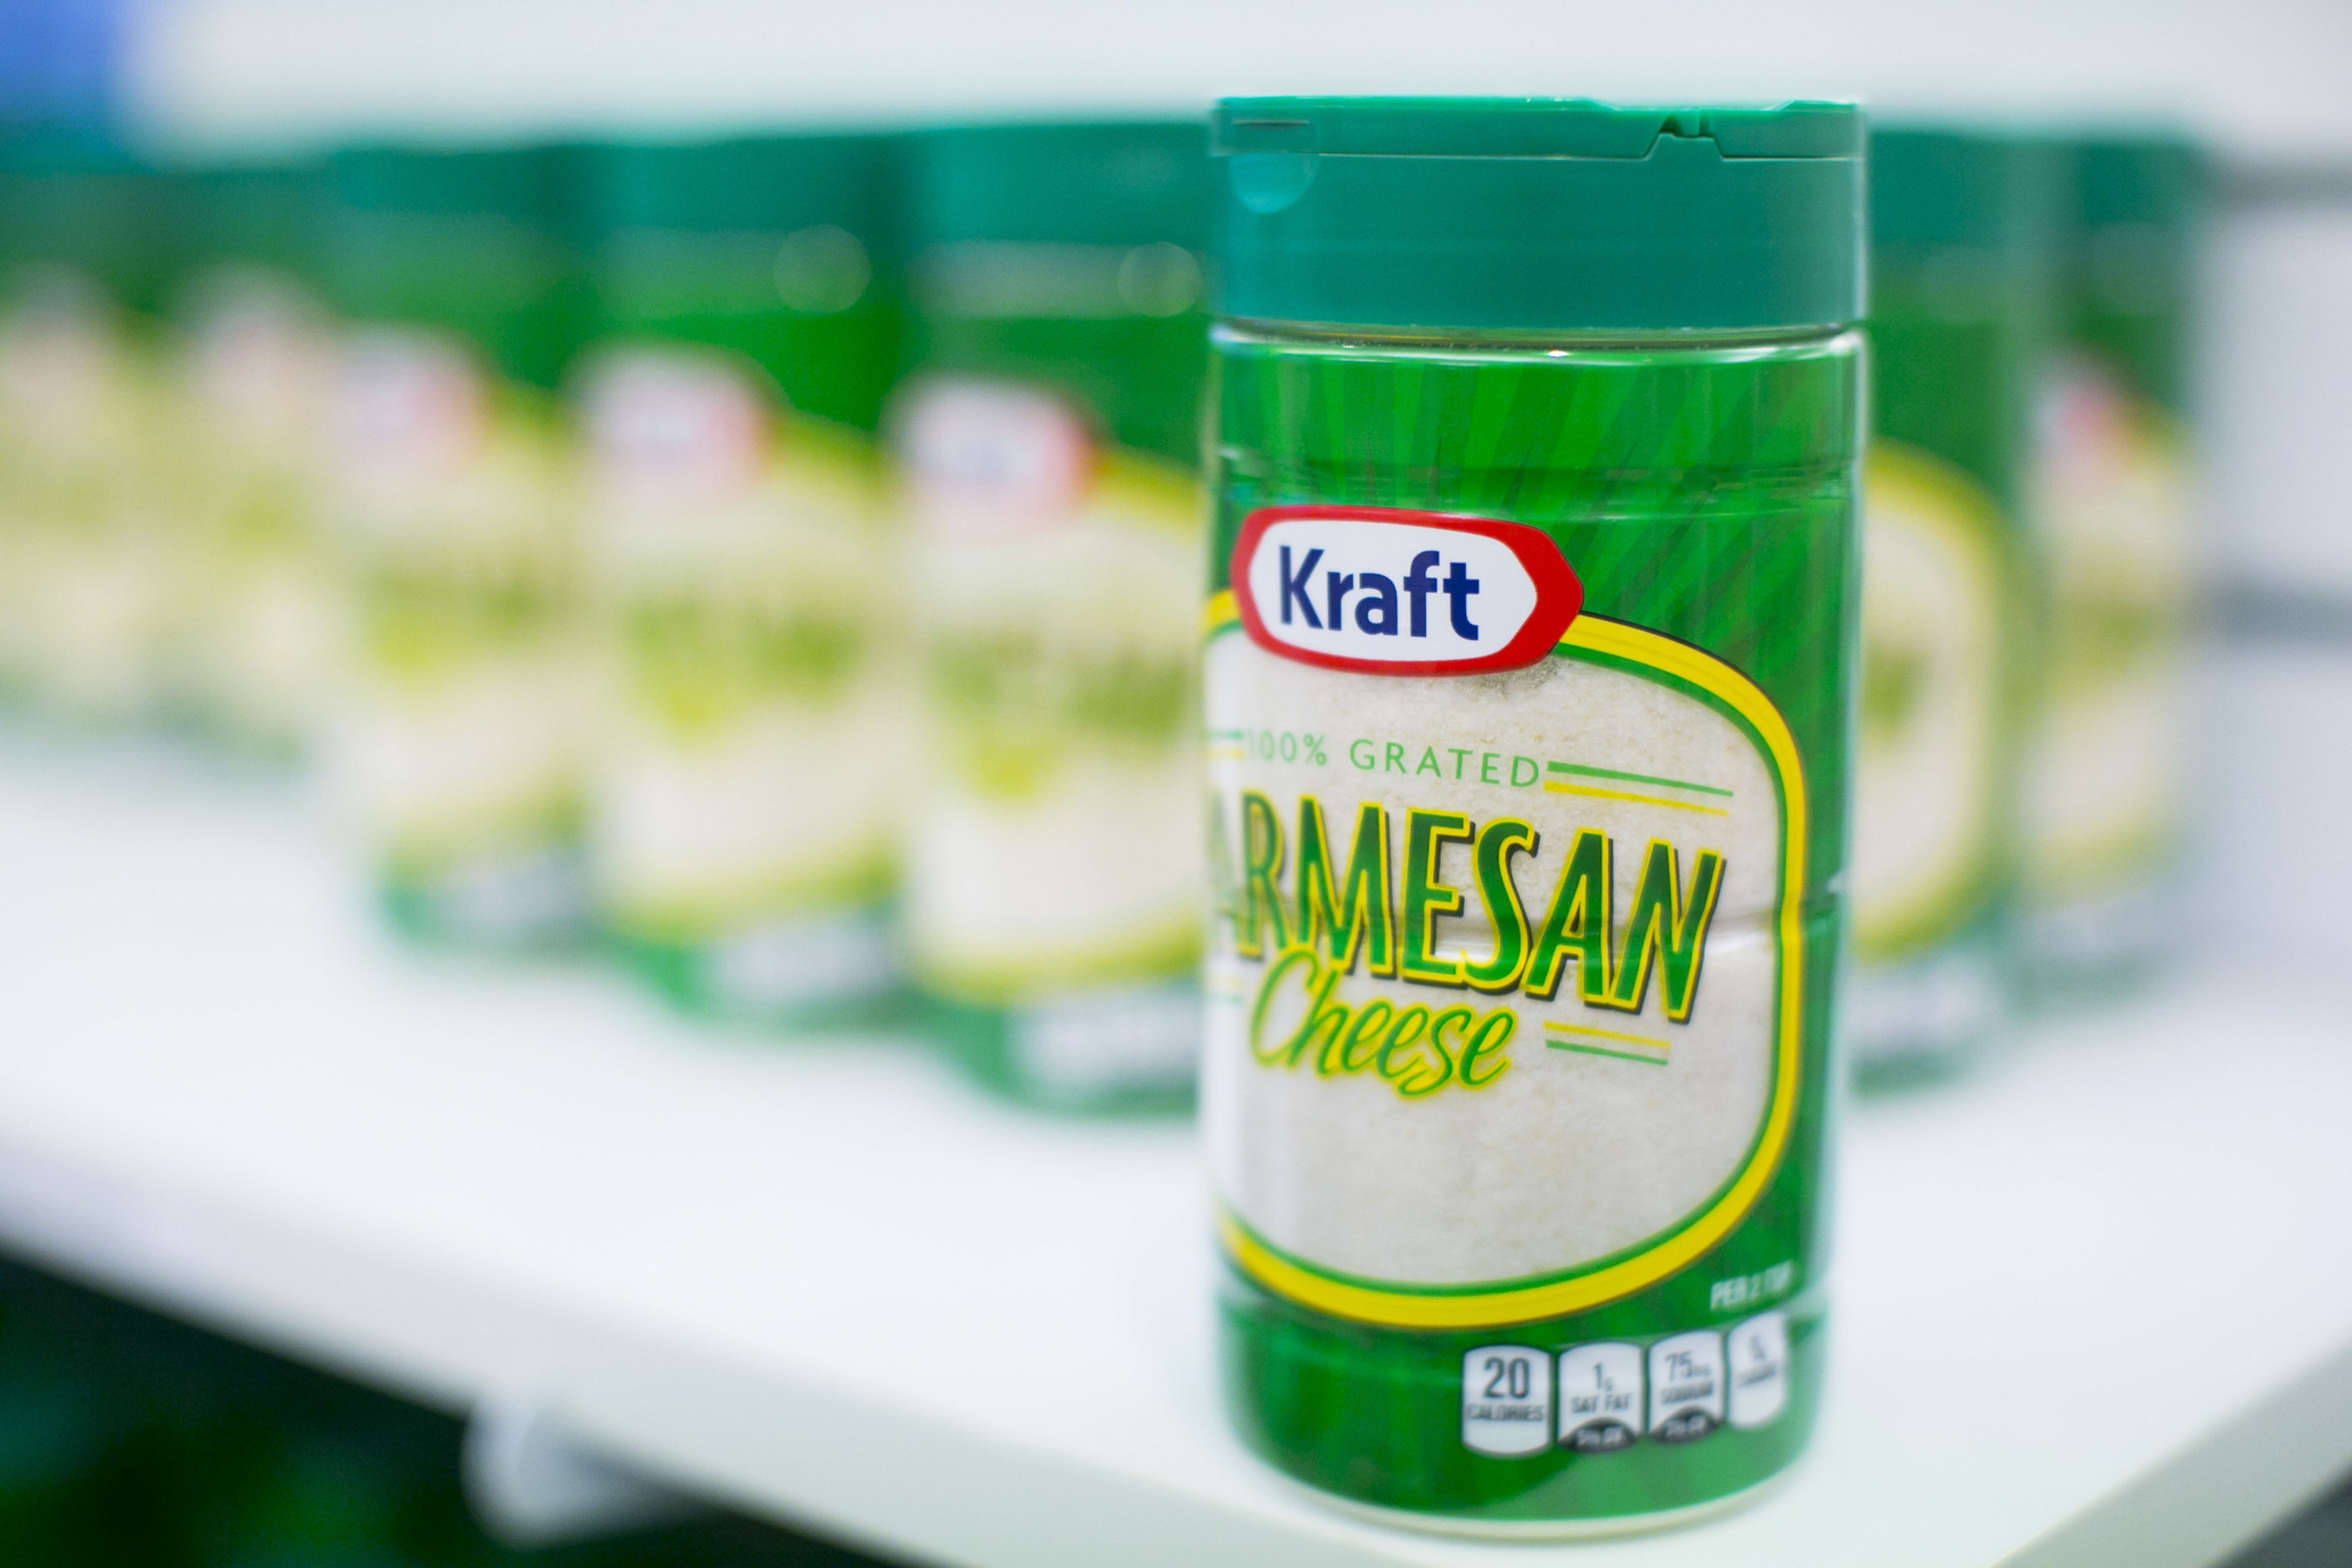 March 25, 2015 - H.J. Heinz Company and Kraft Foods Group (NASDAQ: KRFT) today announced that they have entered into a definitive merger agreement to create The Kraft Heinz Company, forming the third largest food company in North America with an unparalleled portfolio of iconic brands.